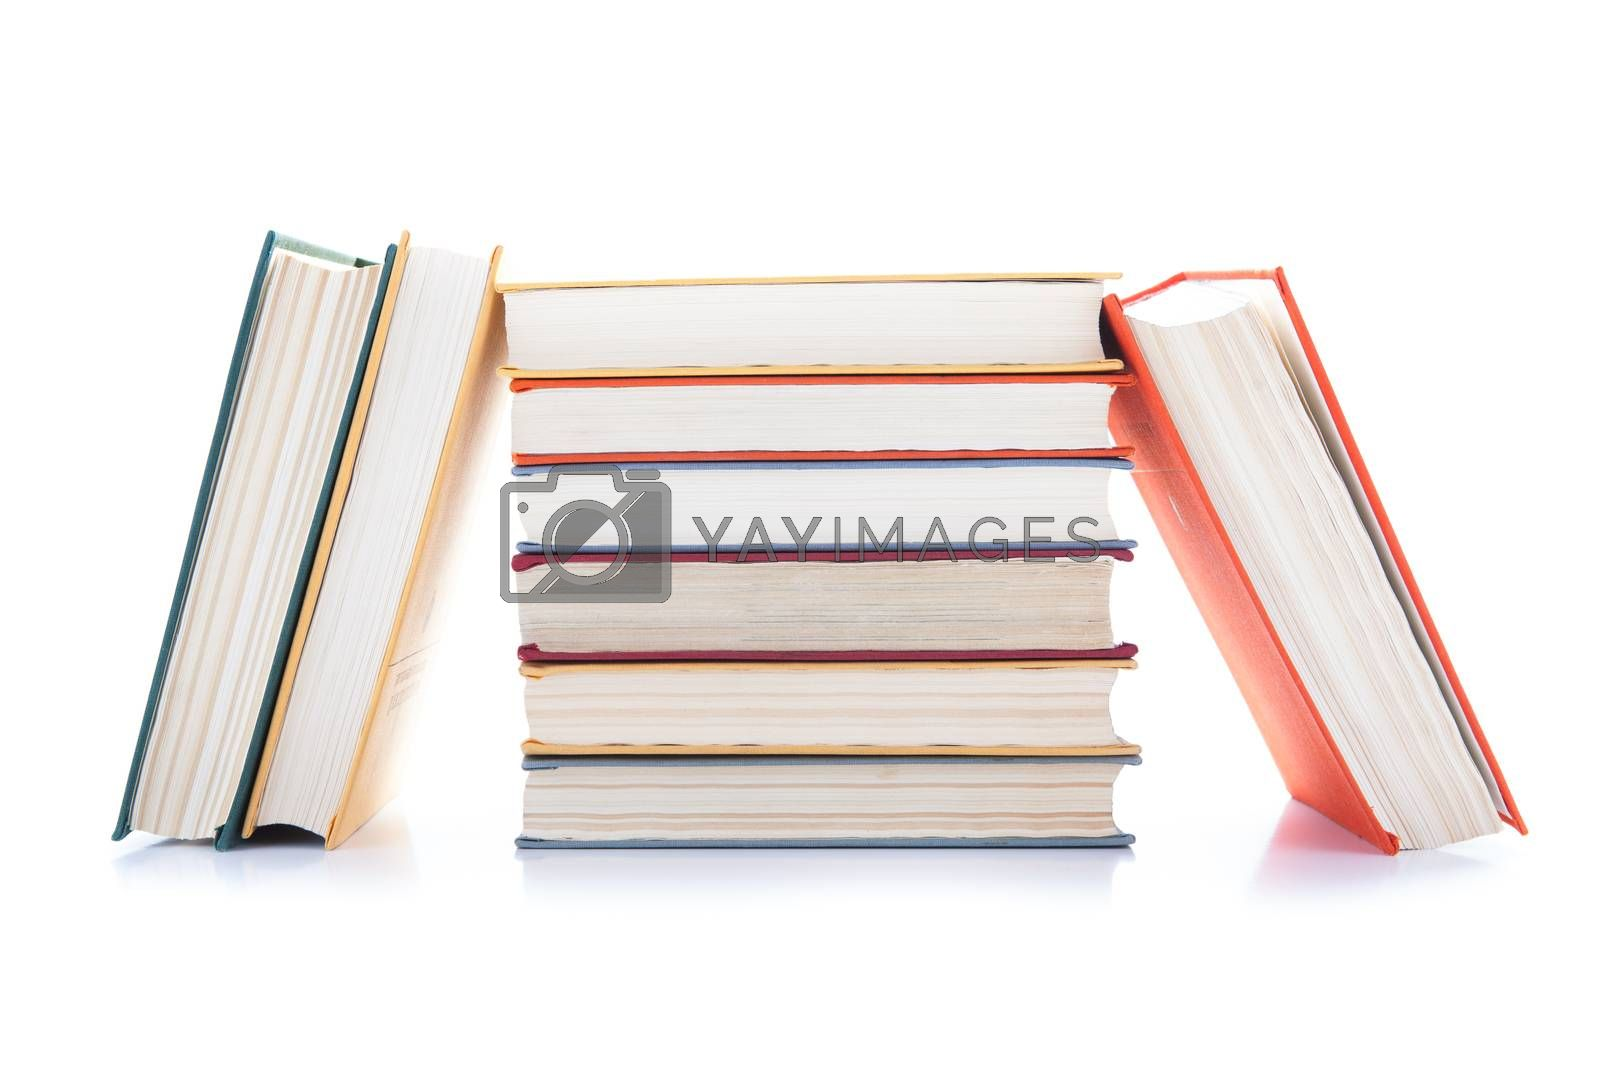 Royalty free image of stack of books on white by mizar_21984